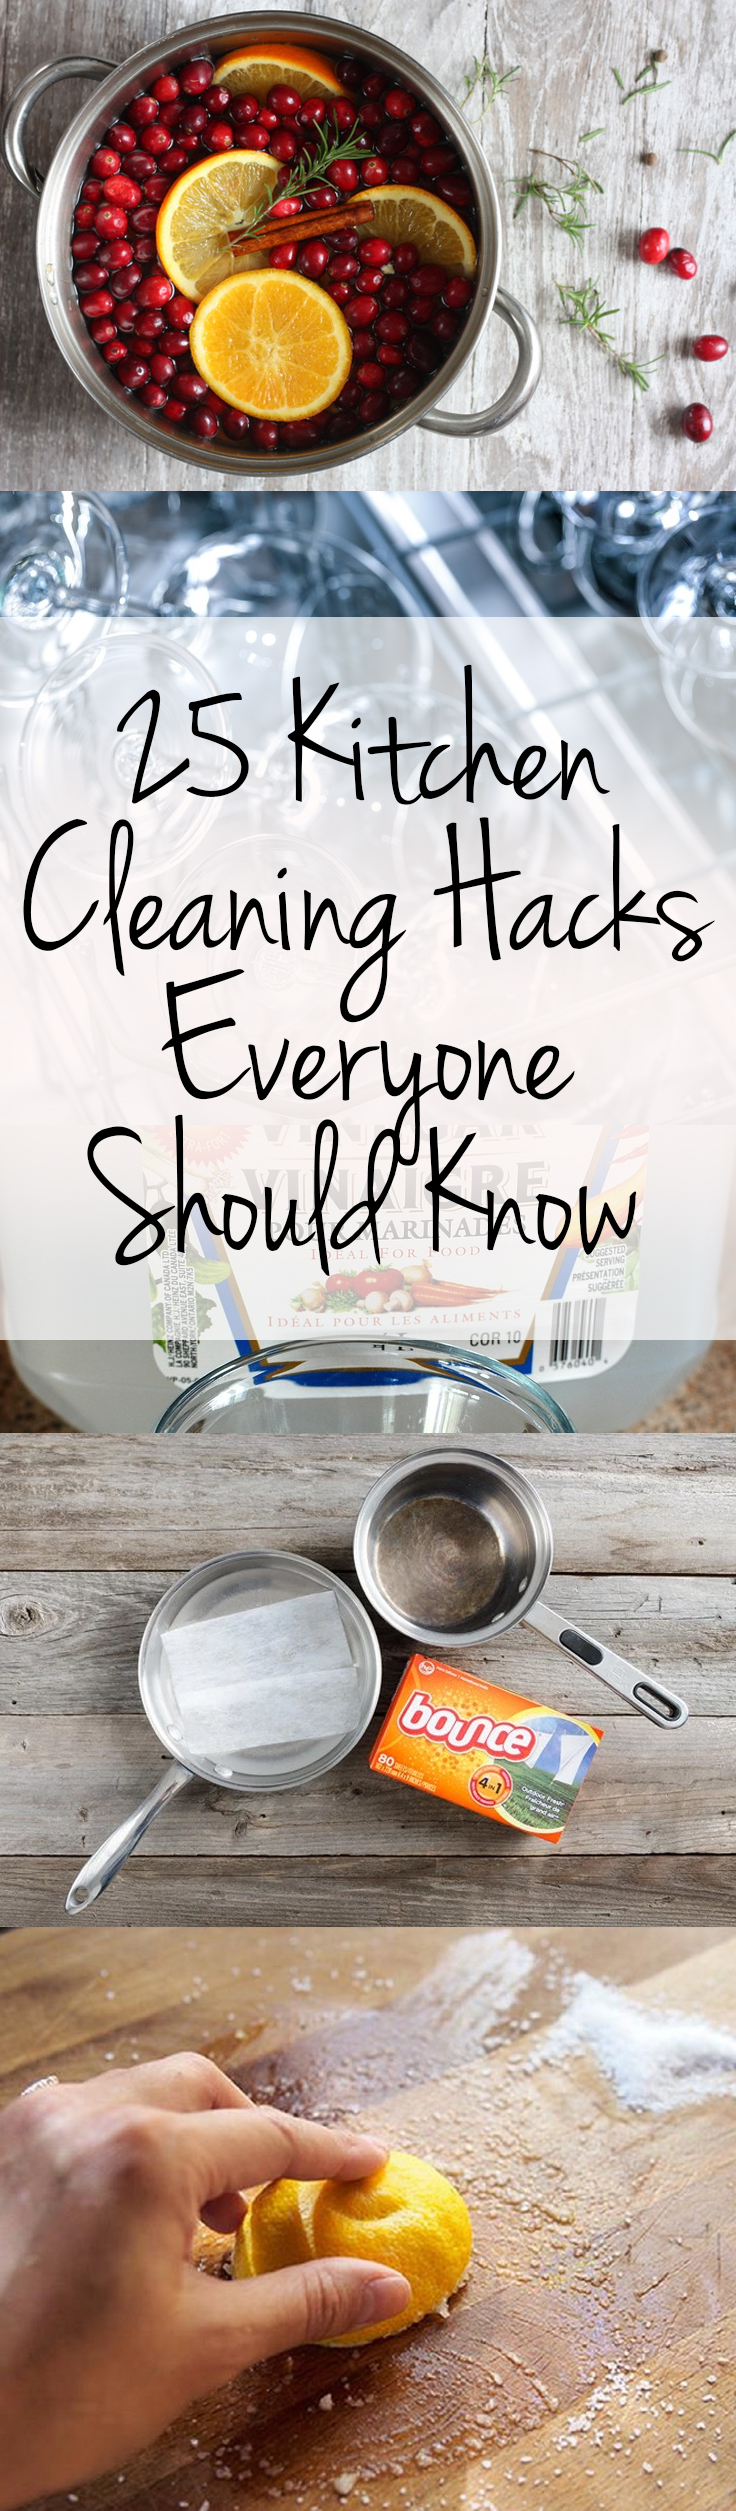 Kitchen, Kitchen Cleaning Hacks, Cleaning Tips and Tricks, Kitchen DIY, Kitchen Organization, Popular Pin, Easy Kitchen Updates